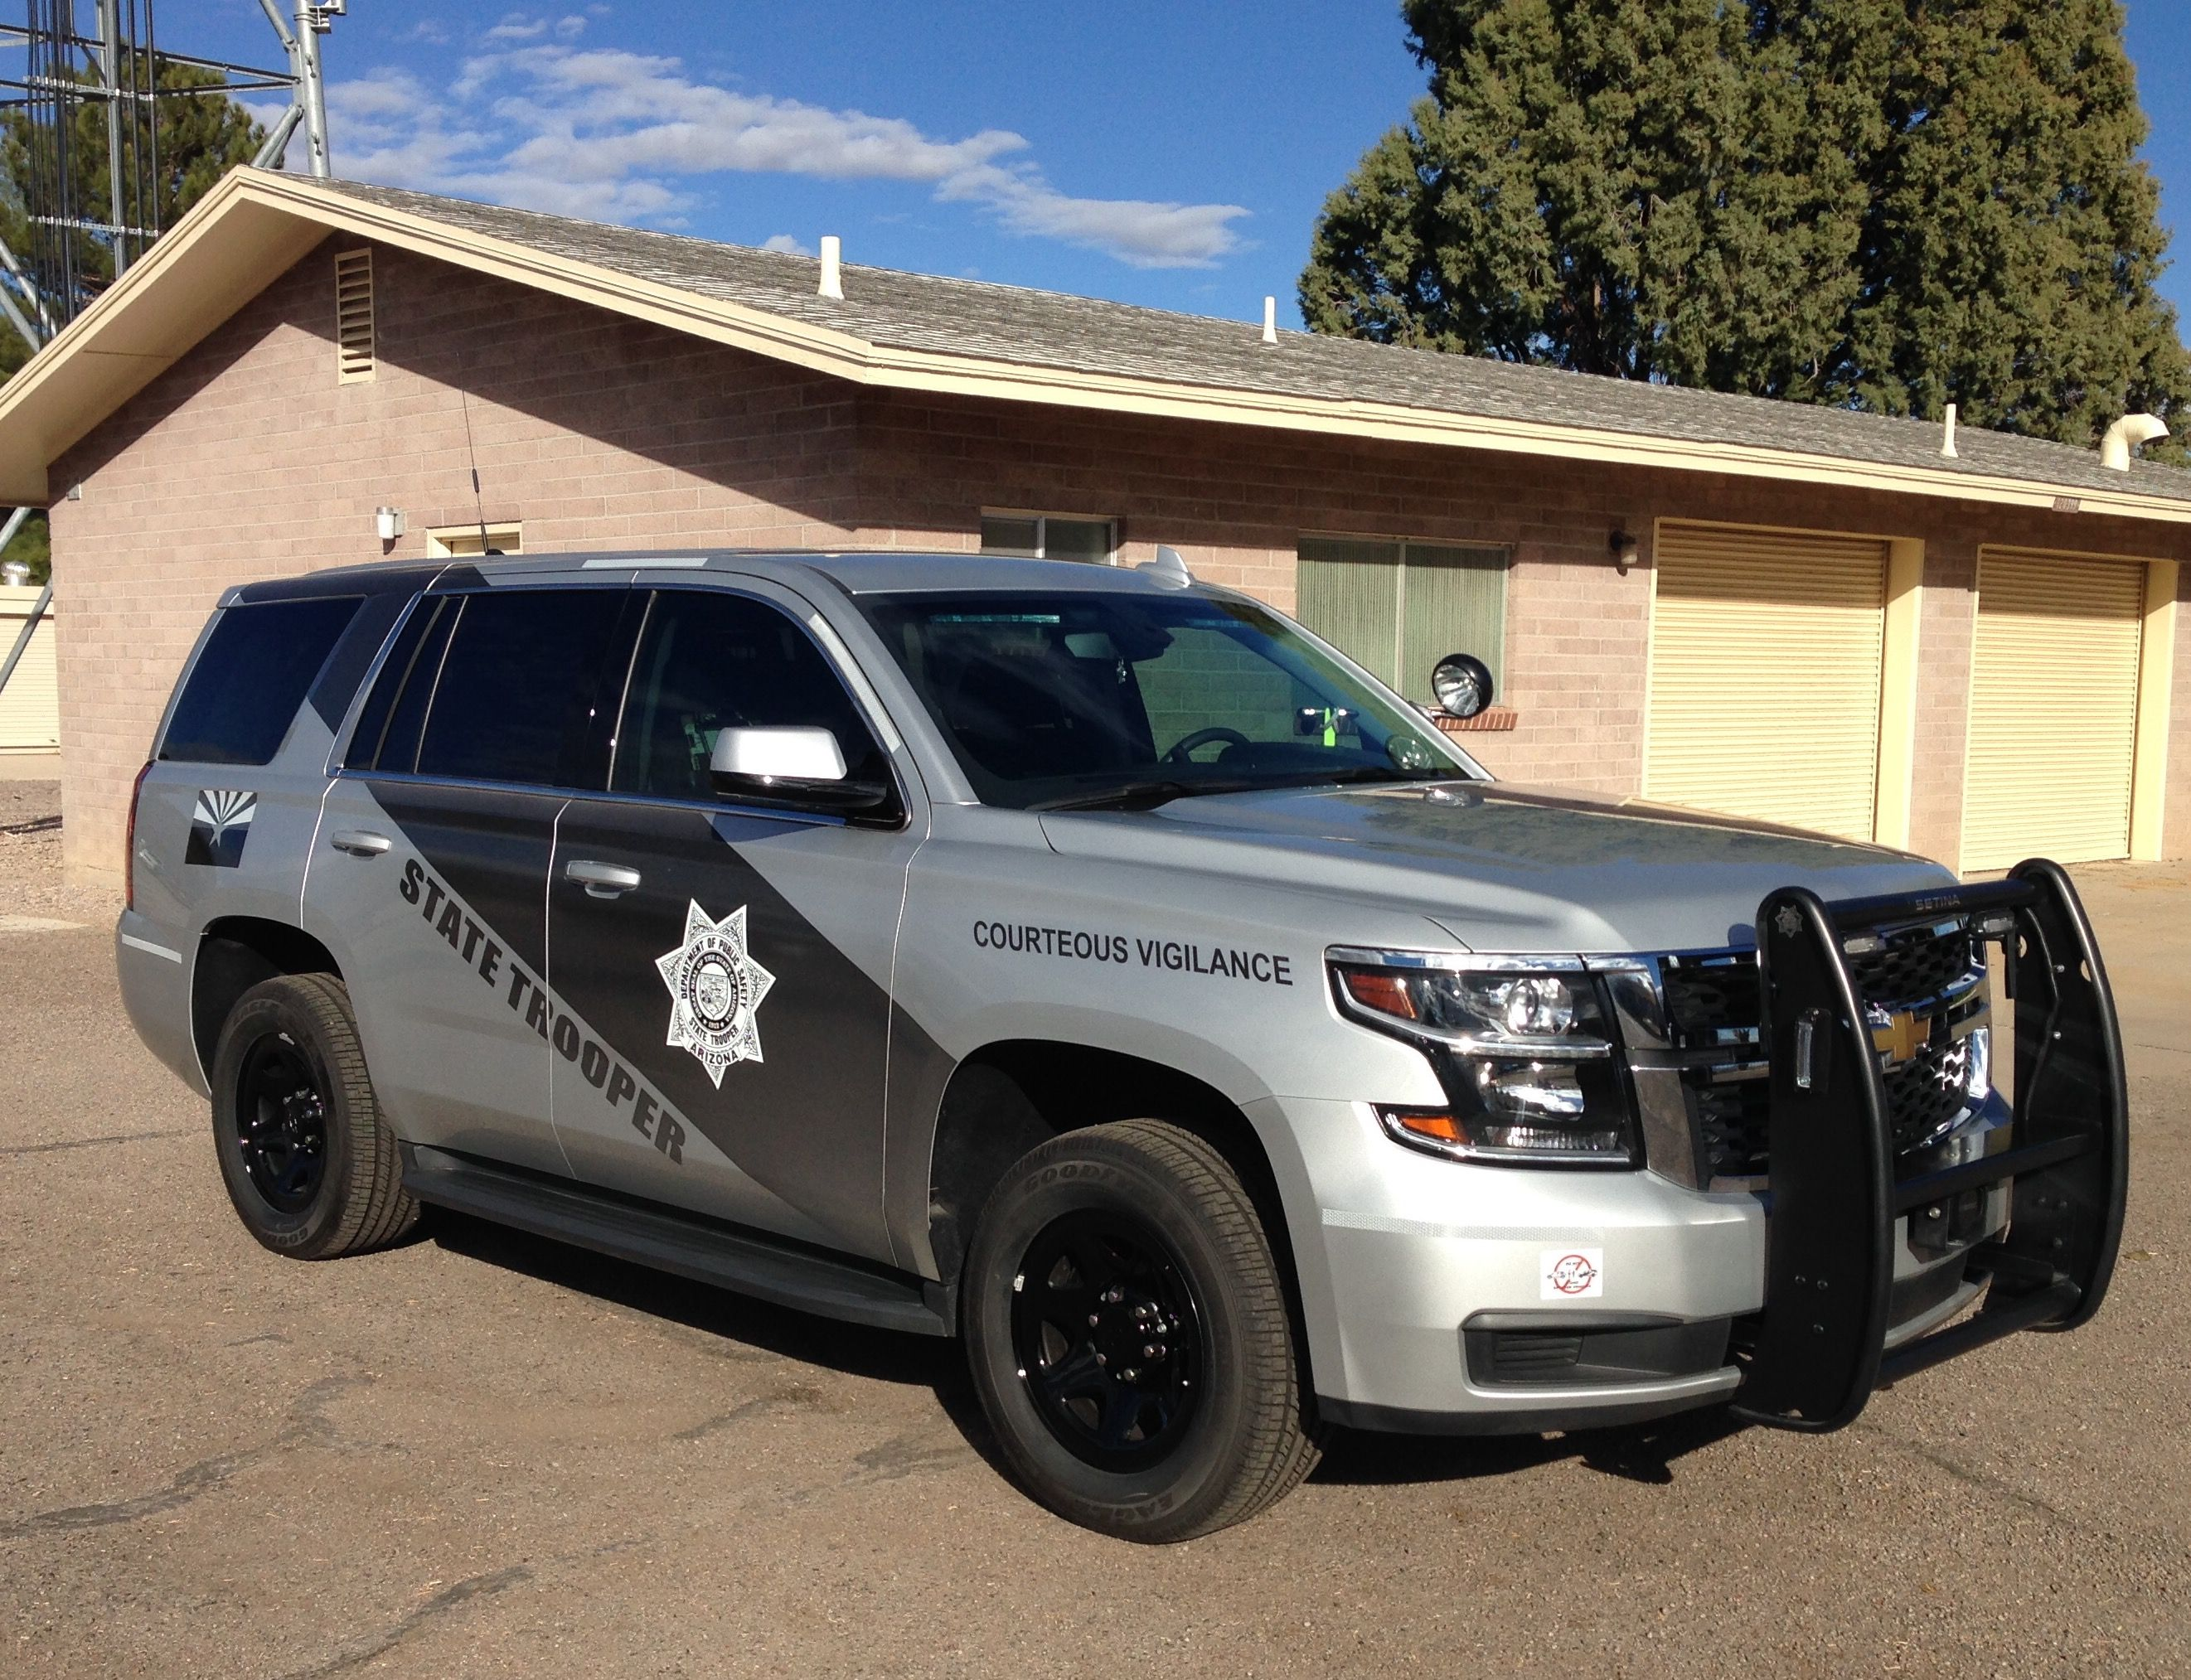 Arizona Dept. of Public Safety State Trooper Chevy Tahoe